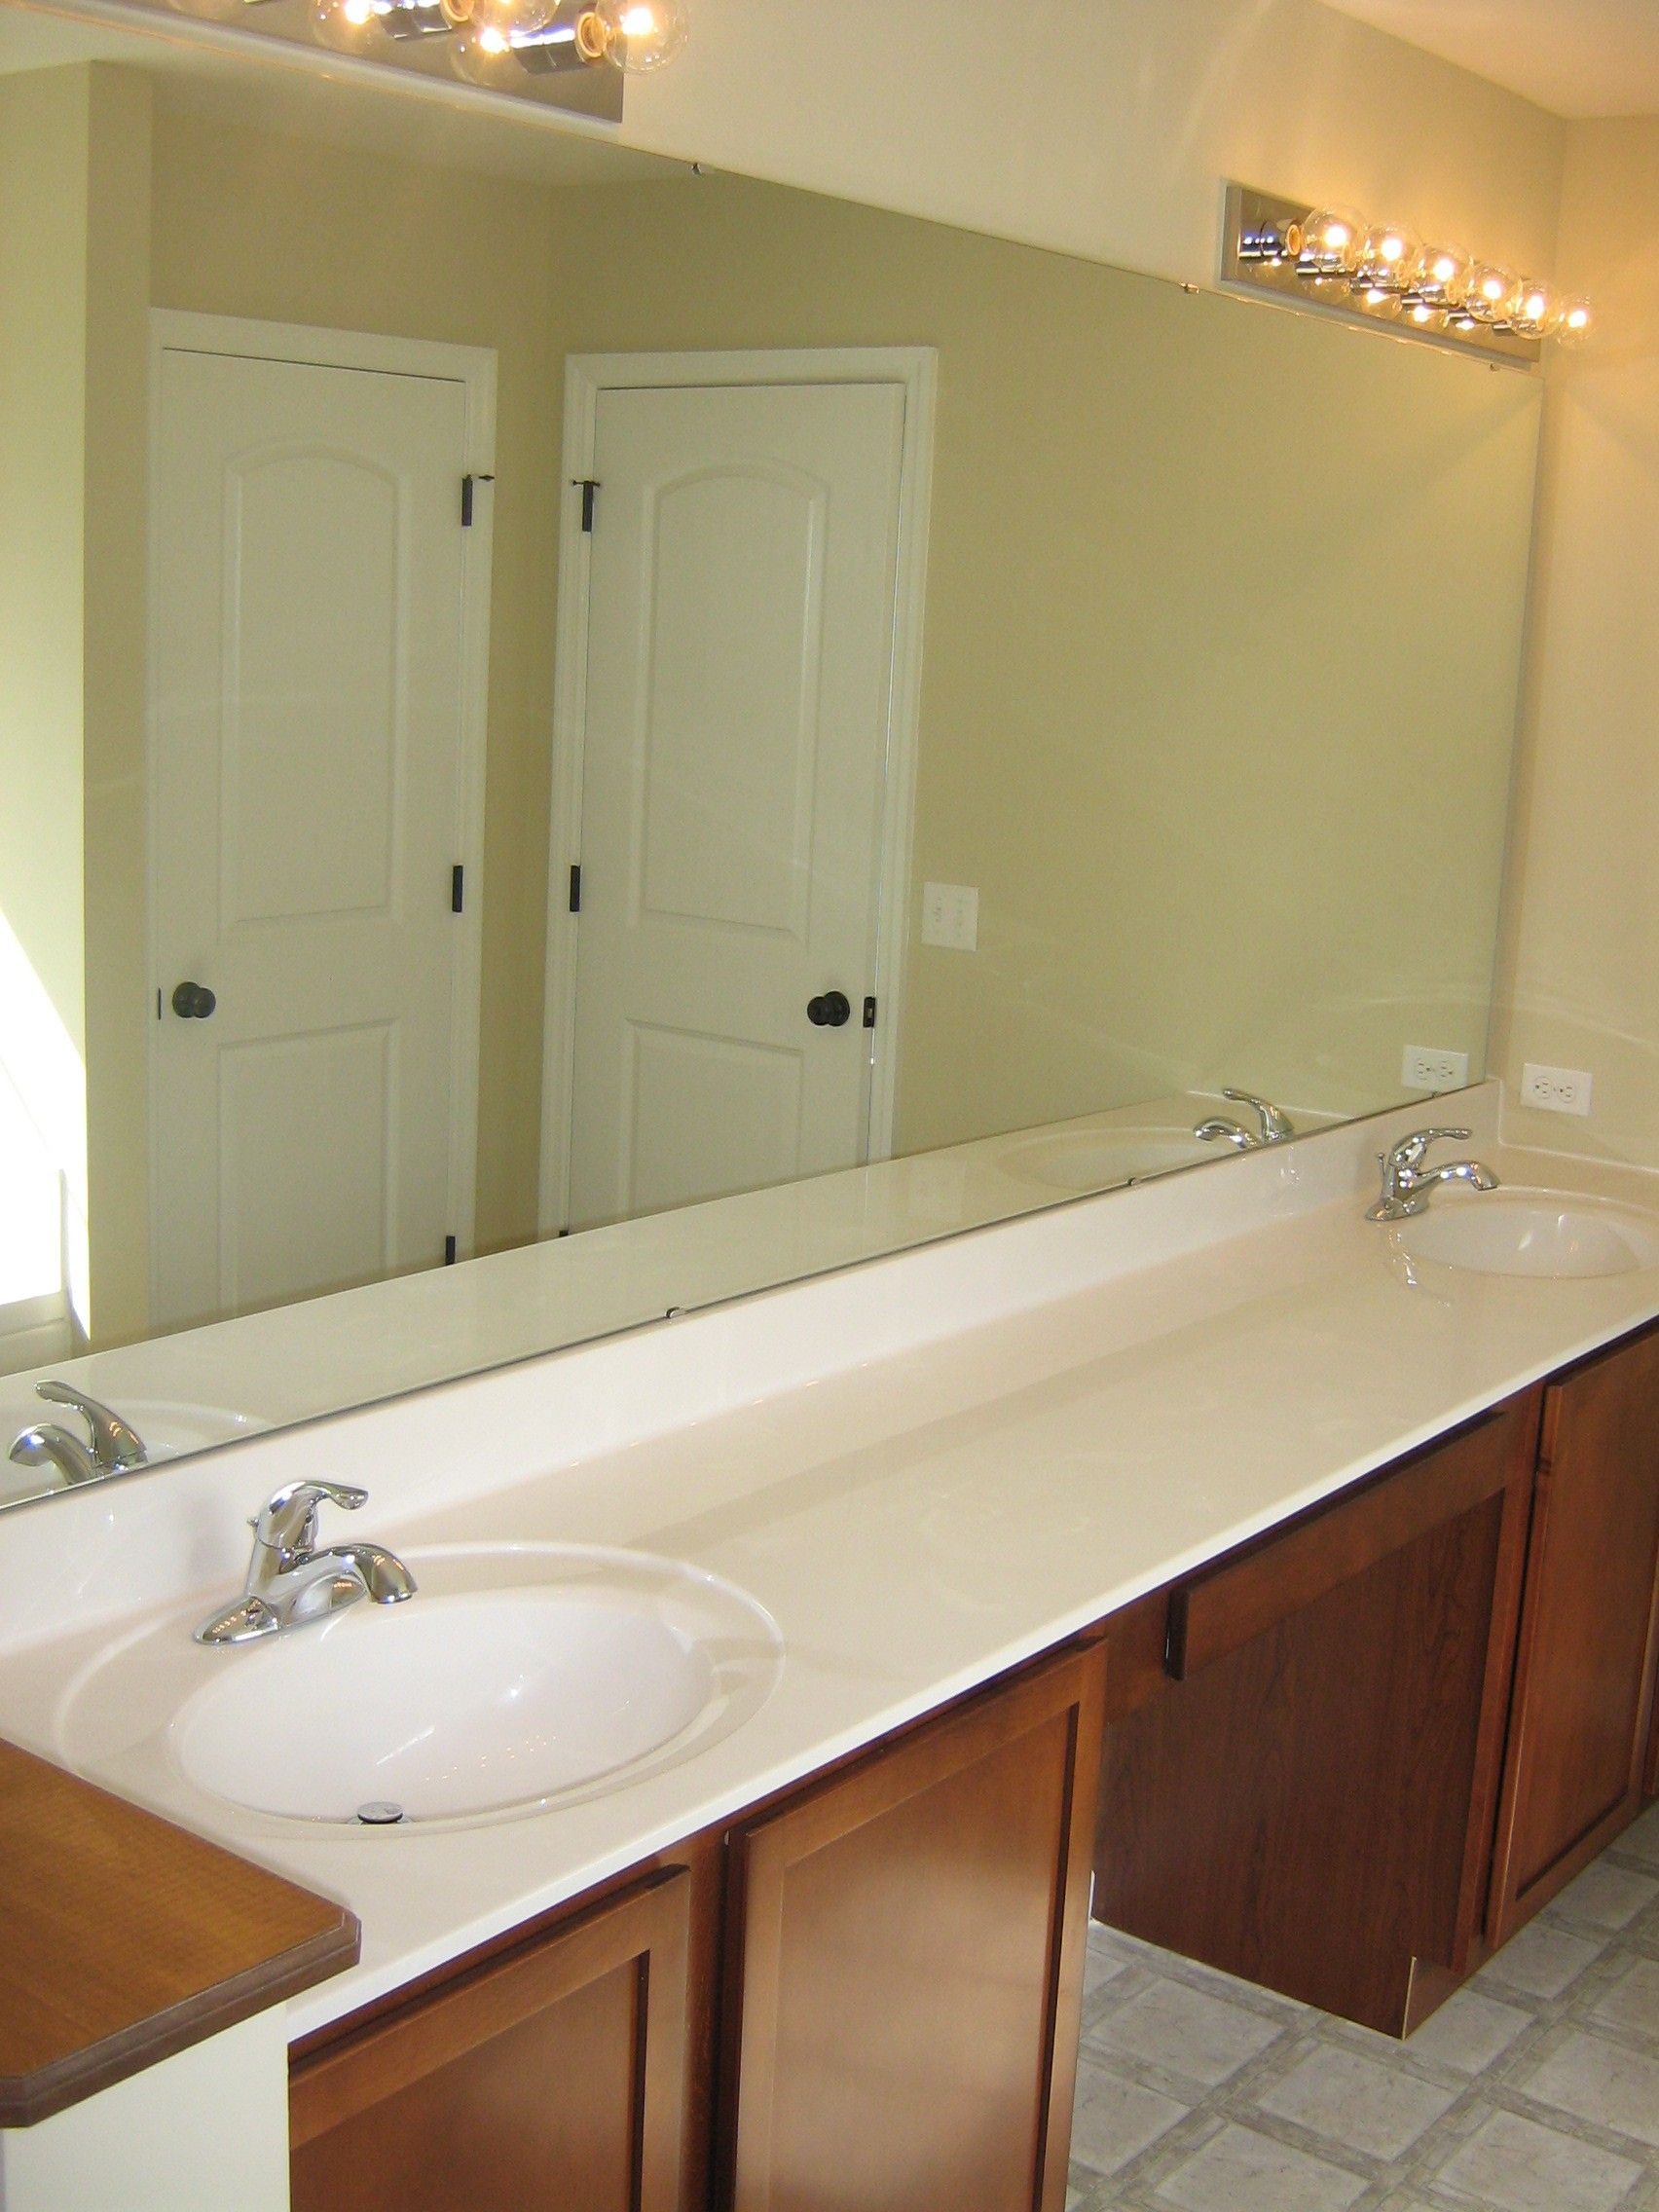 Bathroom featured in The Persimmon By Cannon Builders, Inc.  in St. Louis, MO